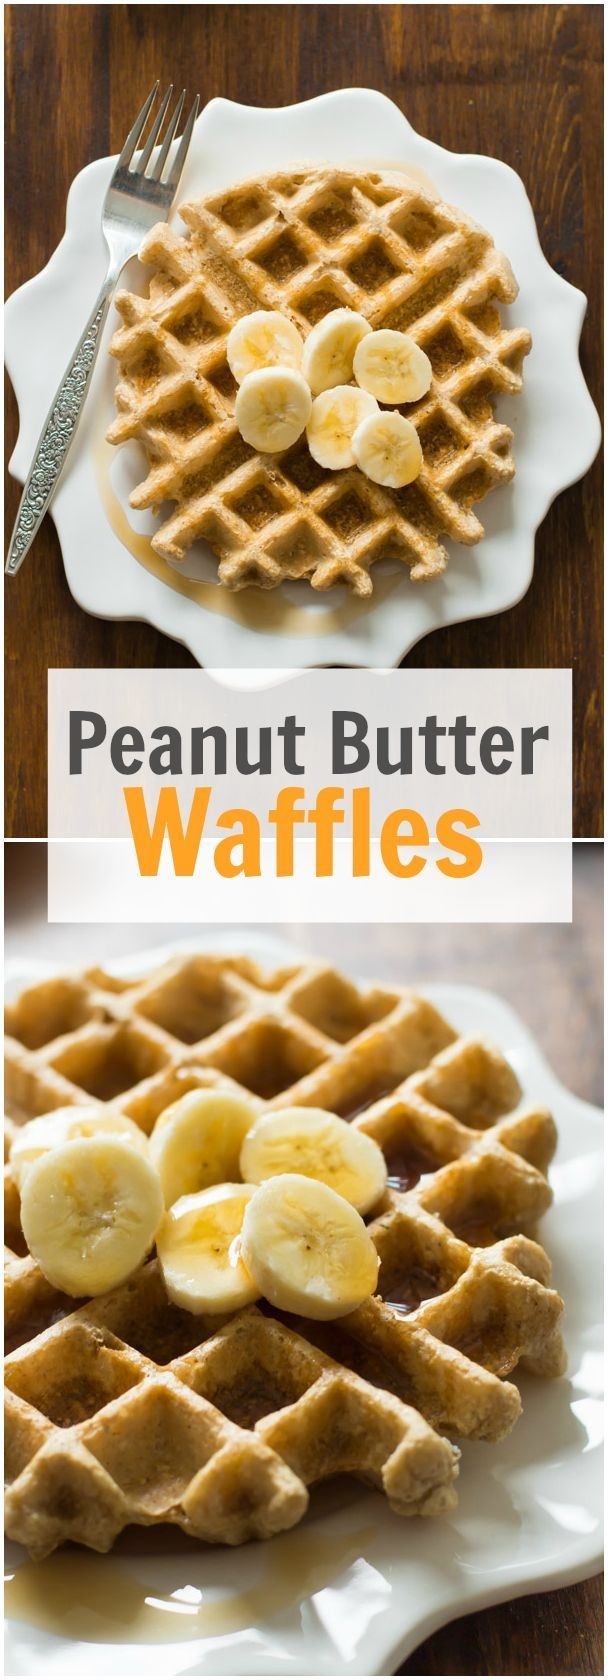 Delicious Peanut Butter Waffles recipe with oatmeal flour, organic peanut butter, coconut milk, baking powder and two egg whites. Healthy and Tasty! Enjoy! primaverakitchen.com